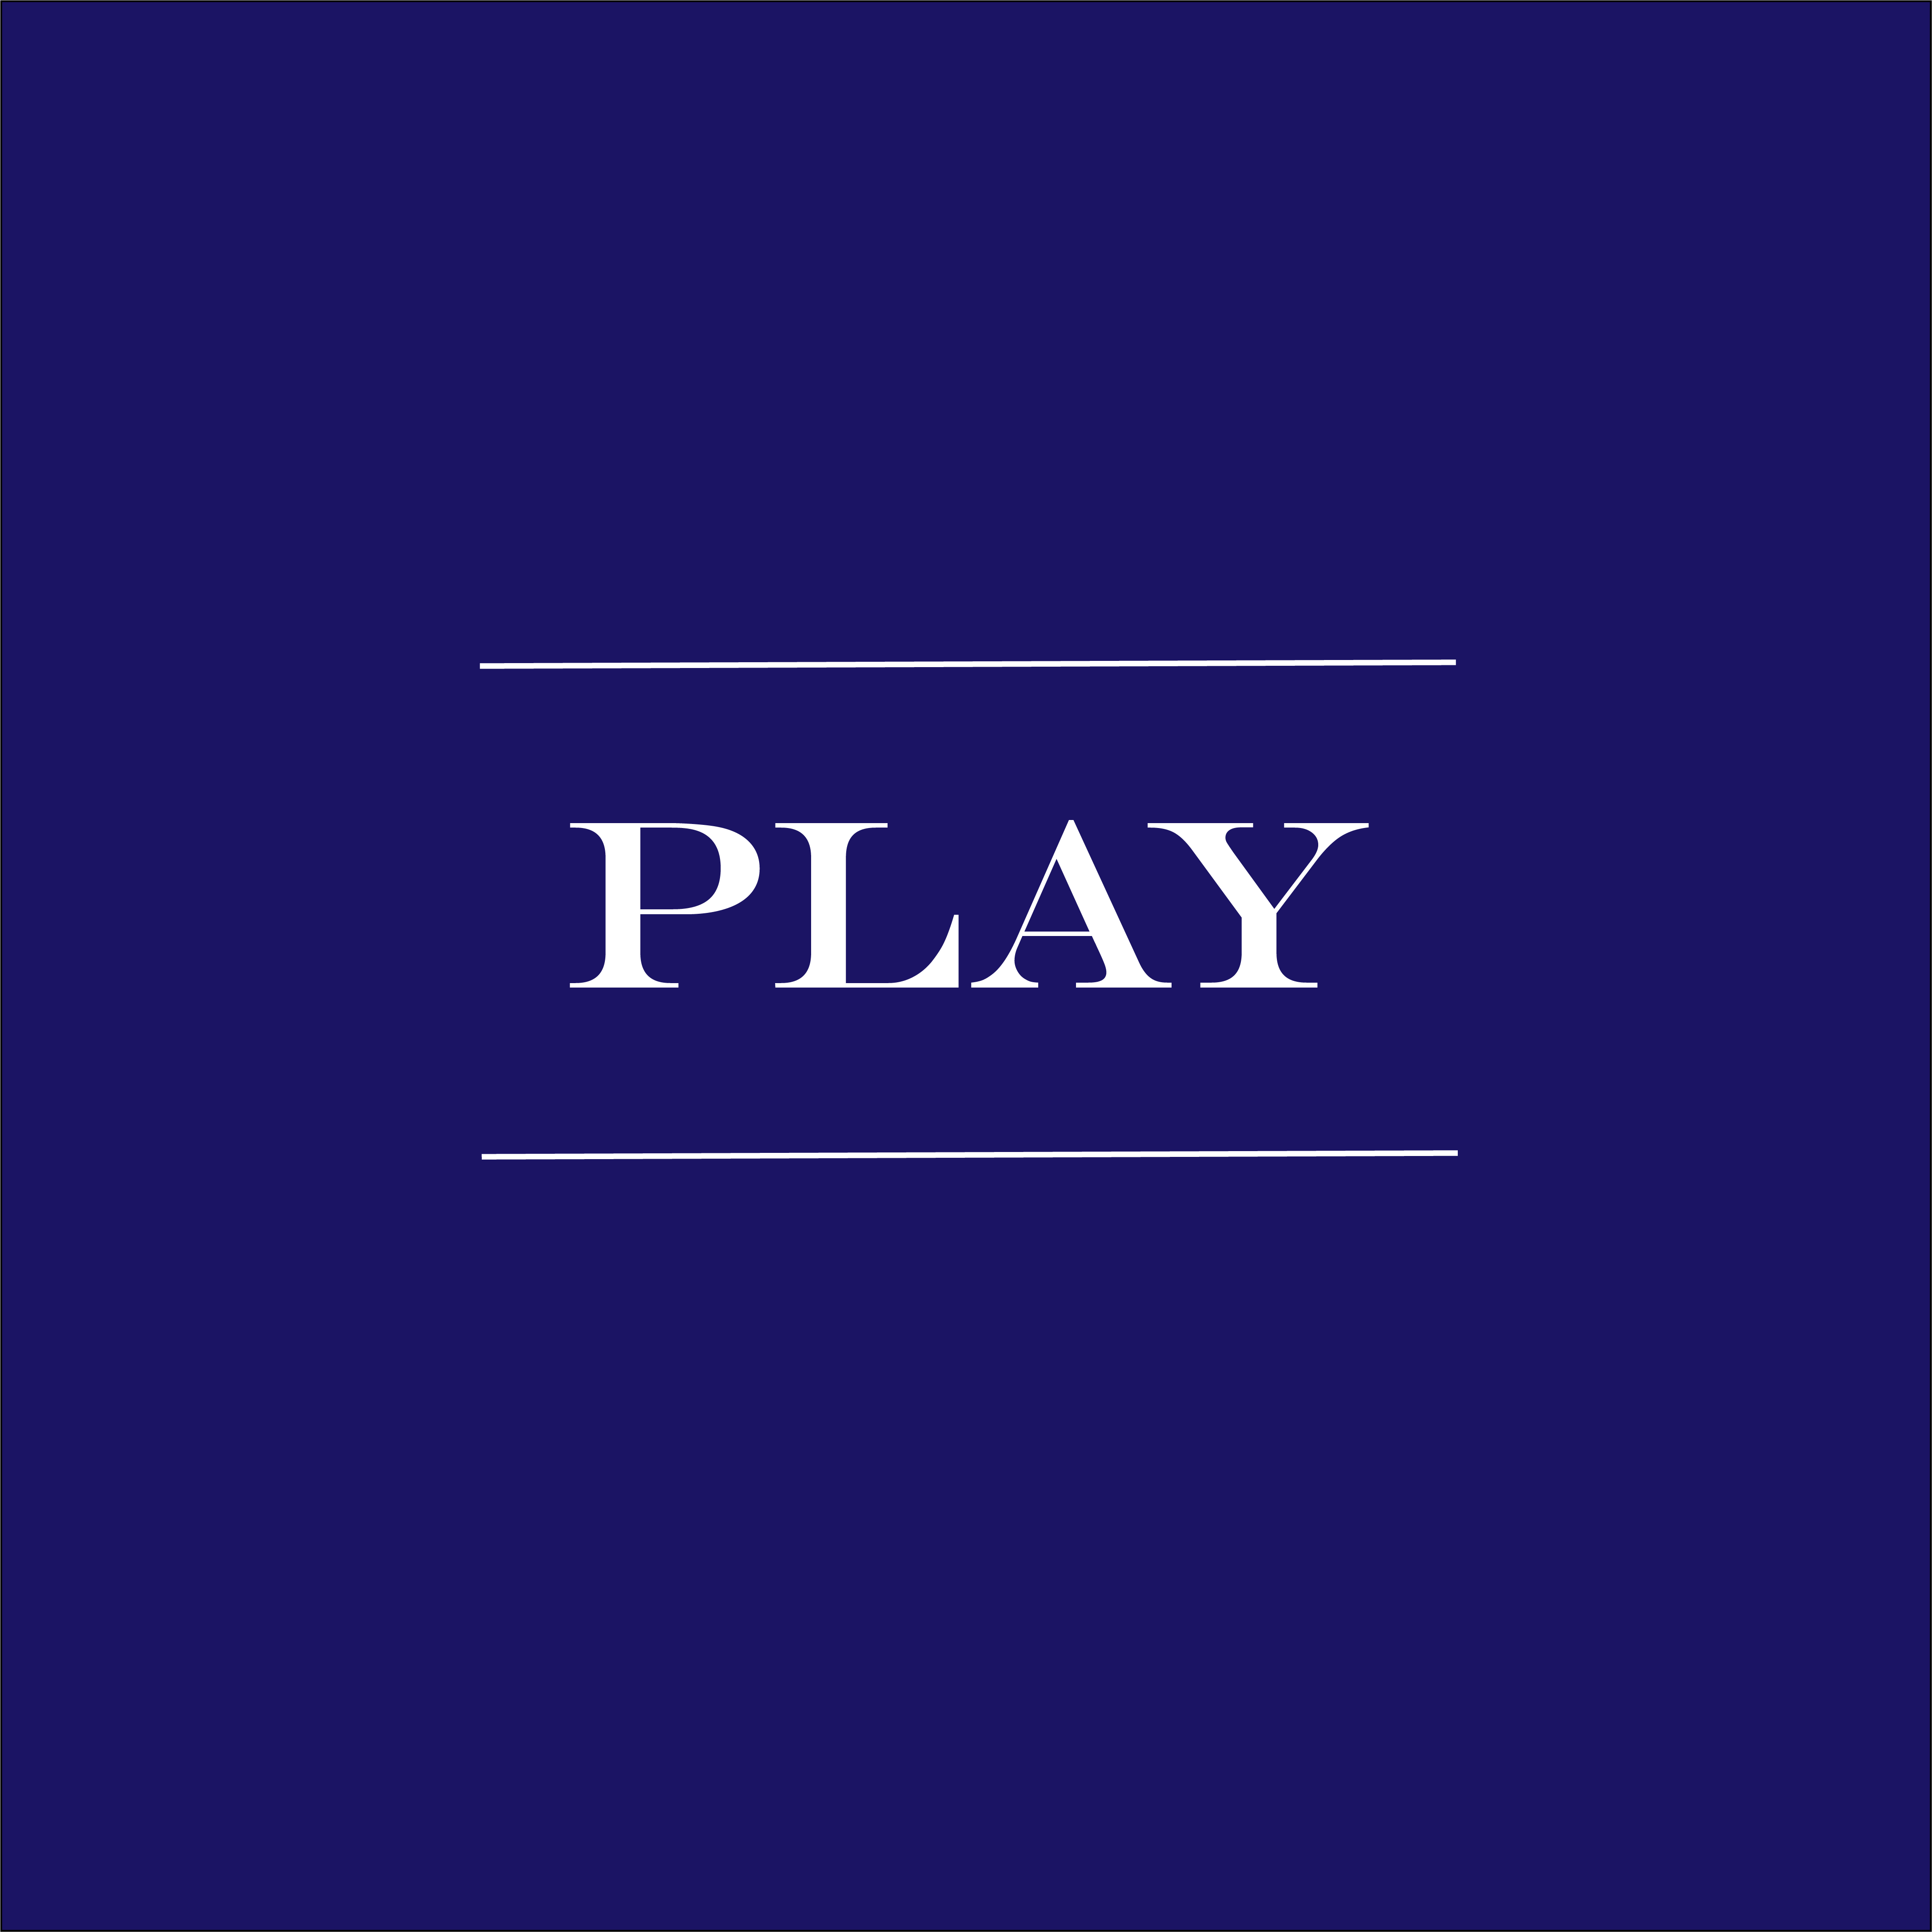 """Image with the word """"Play"""""""